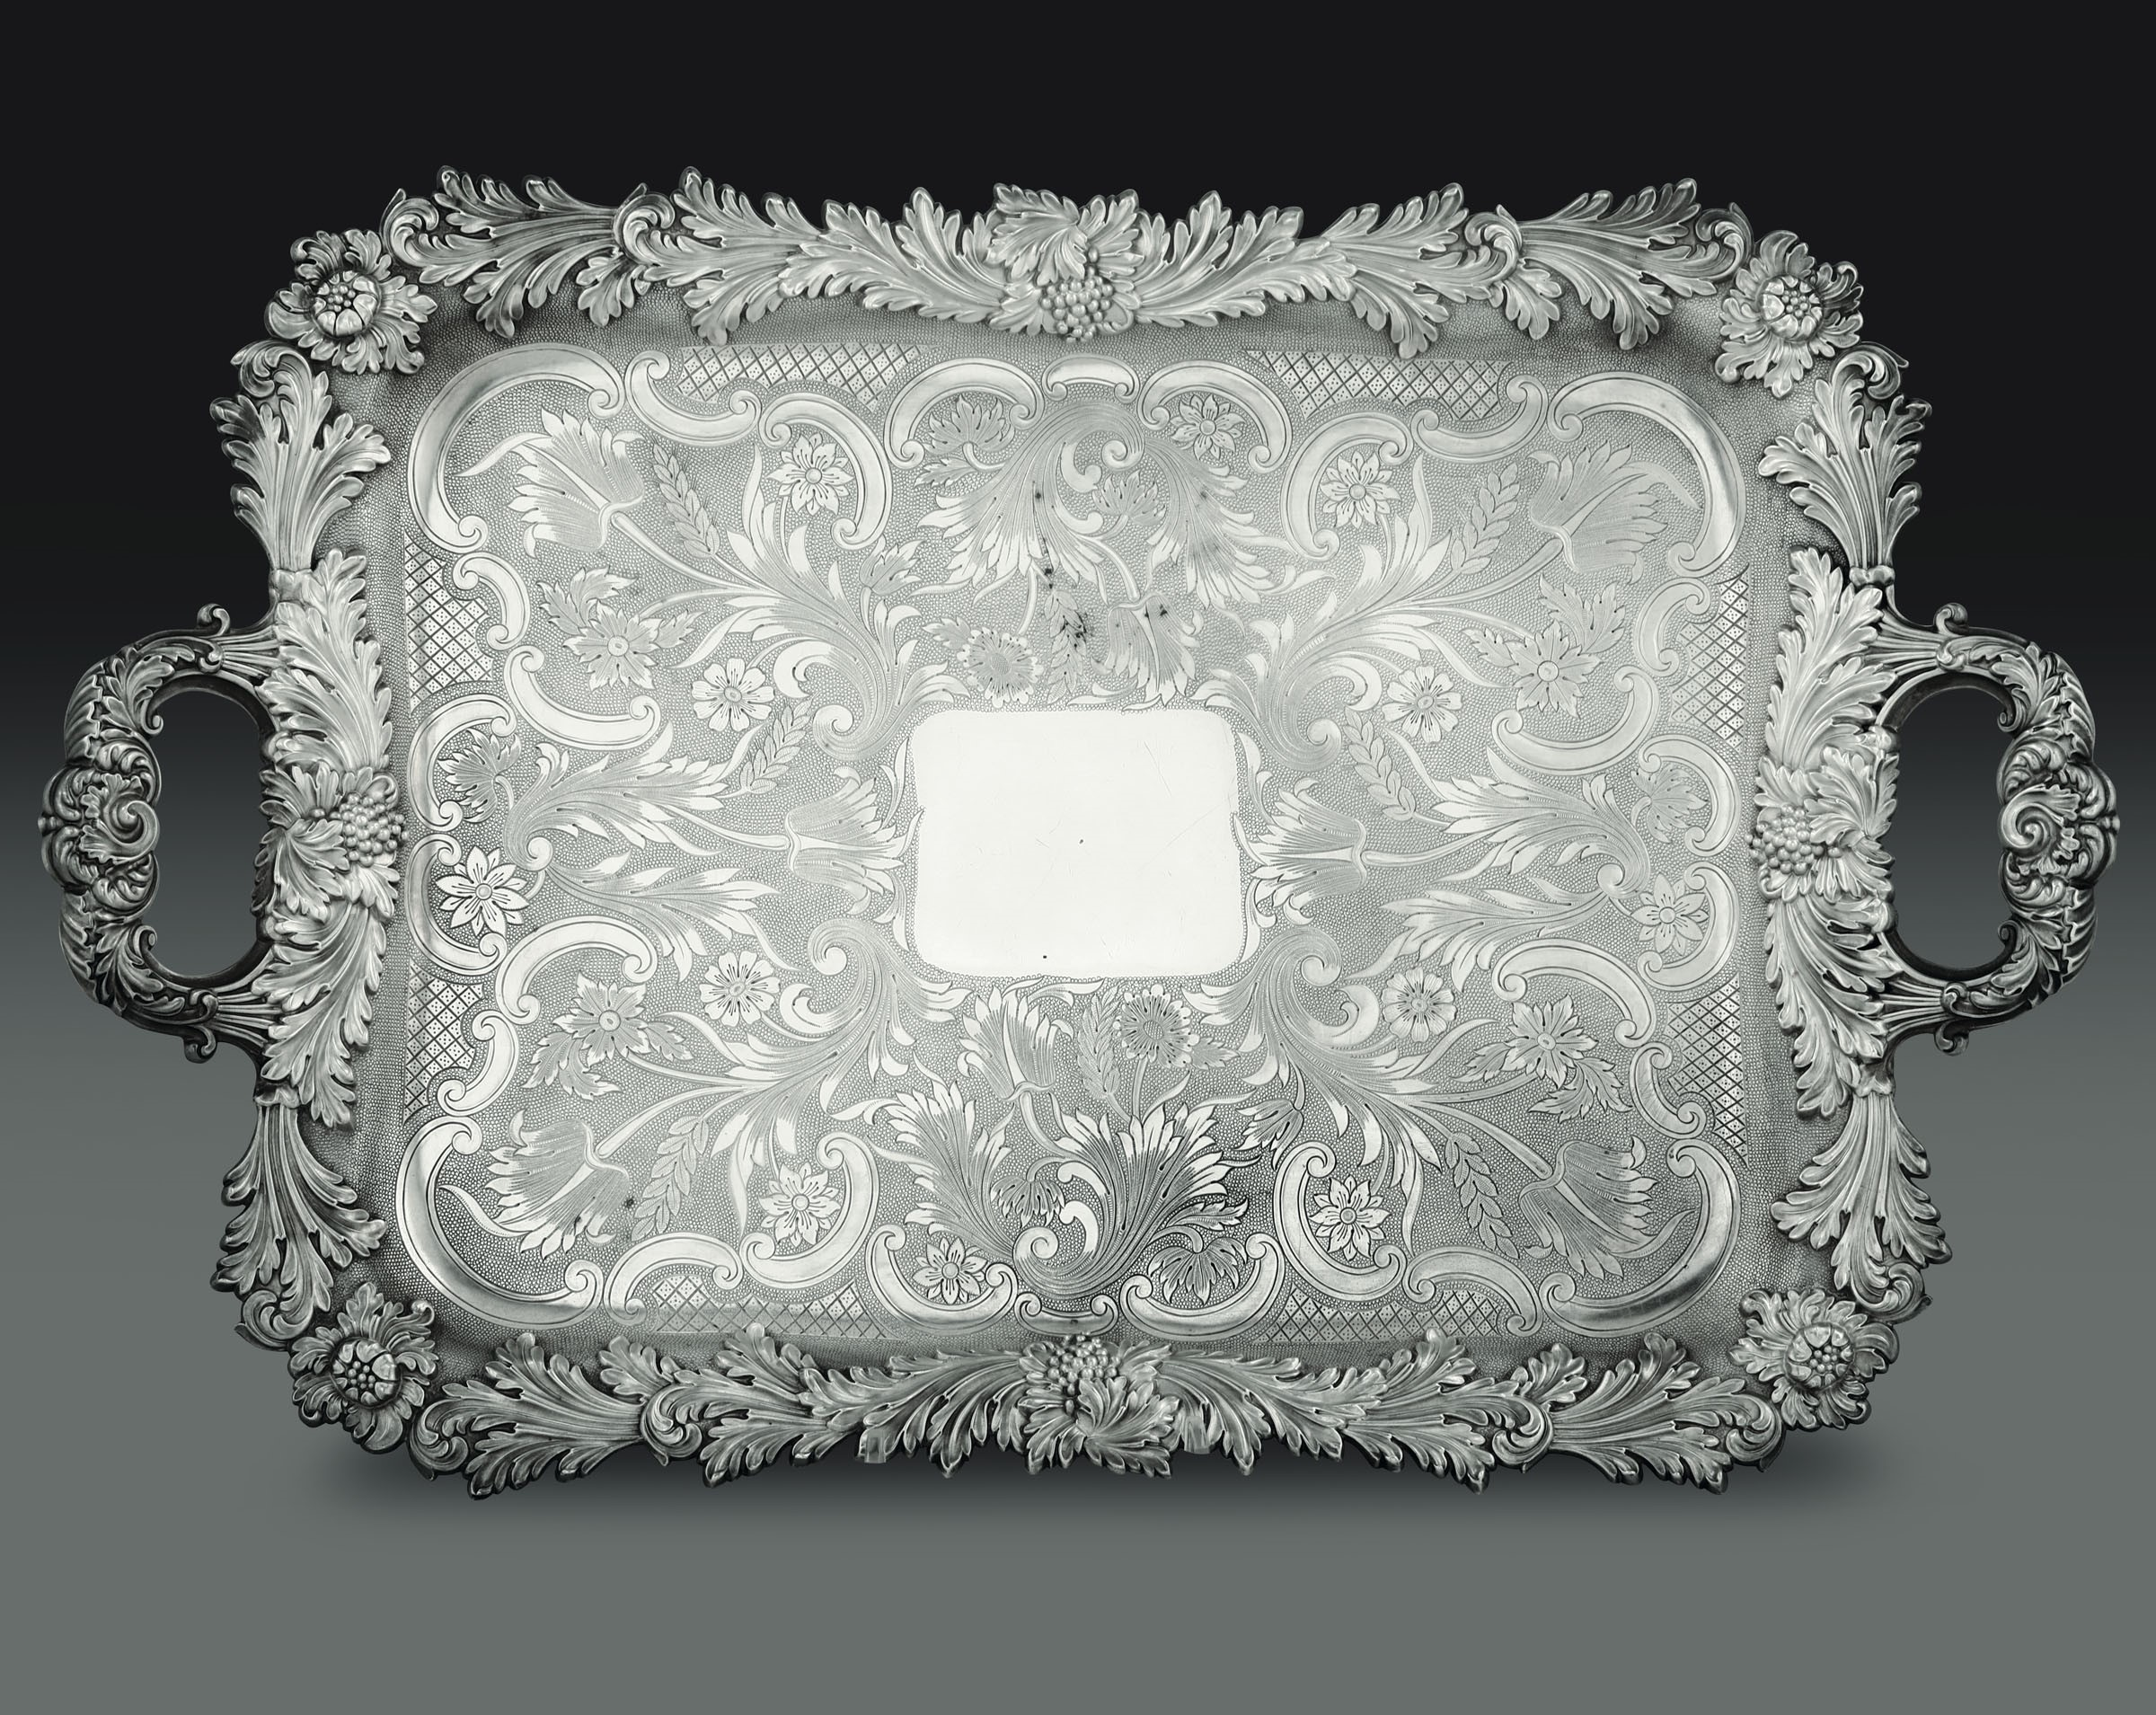 Lot 62 - A silver tray, Maison Odiot, Paris, late 1800s - - Molten and chiselled silver. [...]